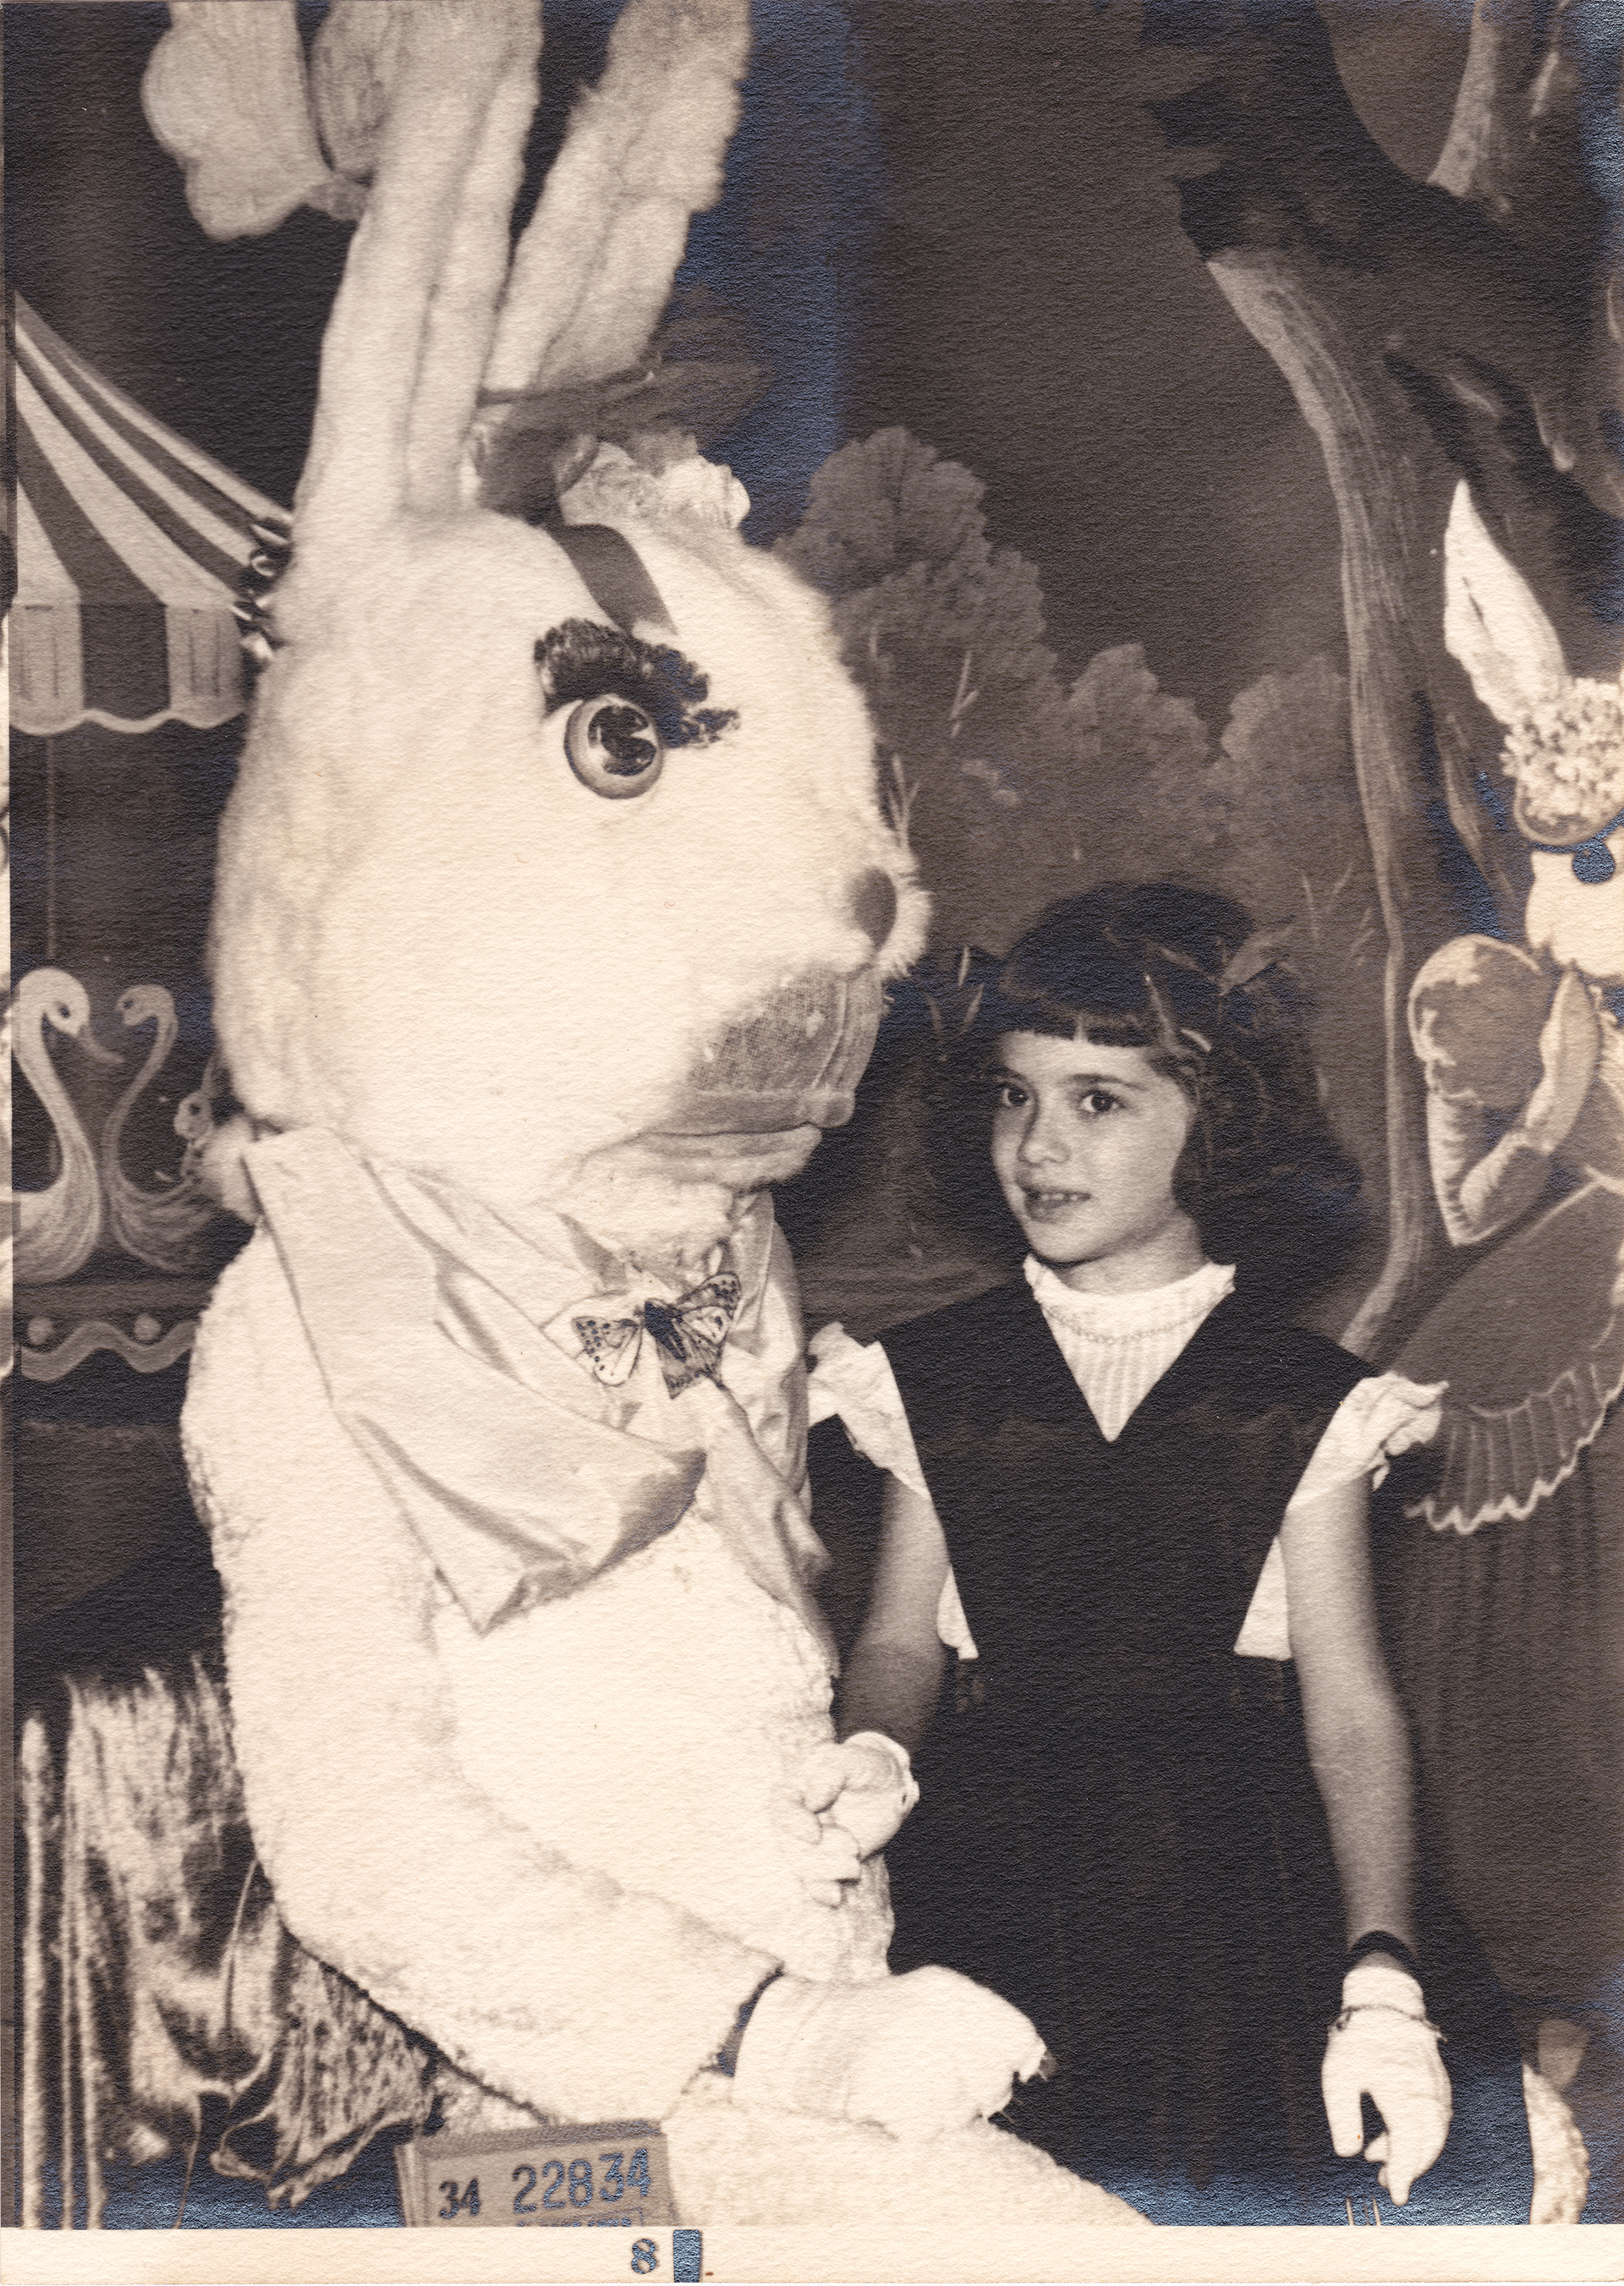 Easter Bunny Weird head